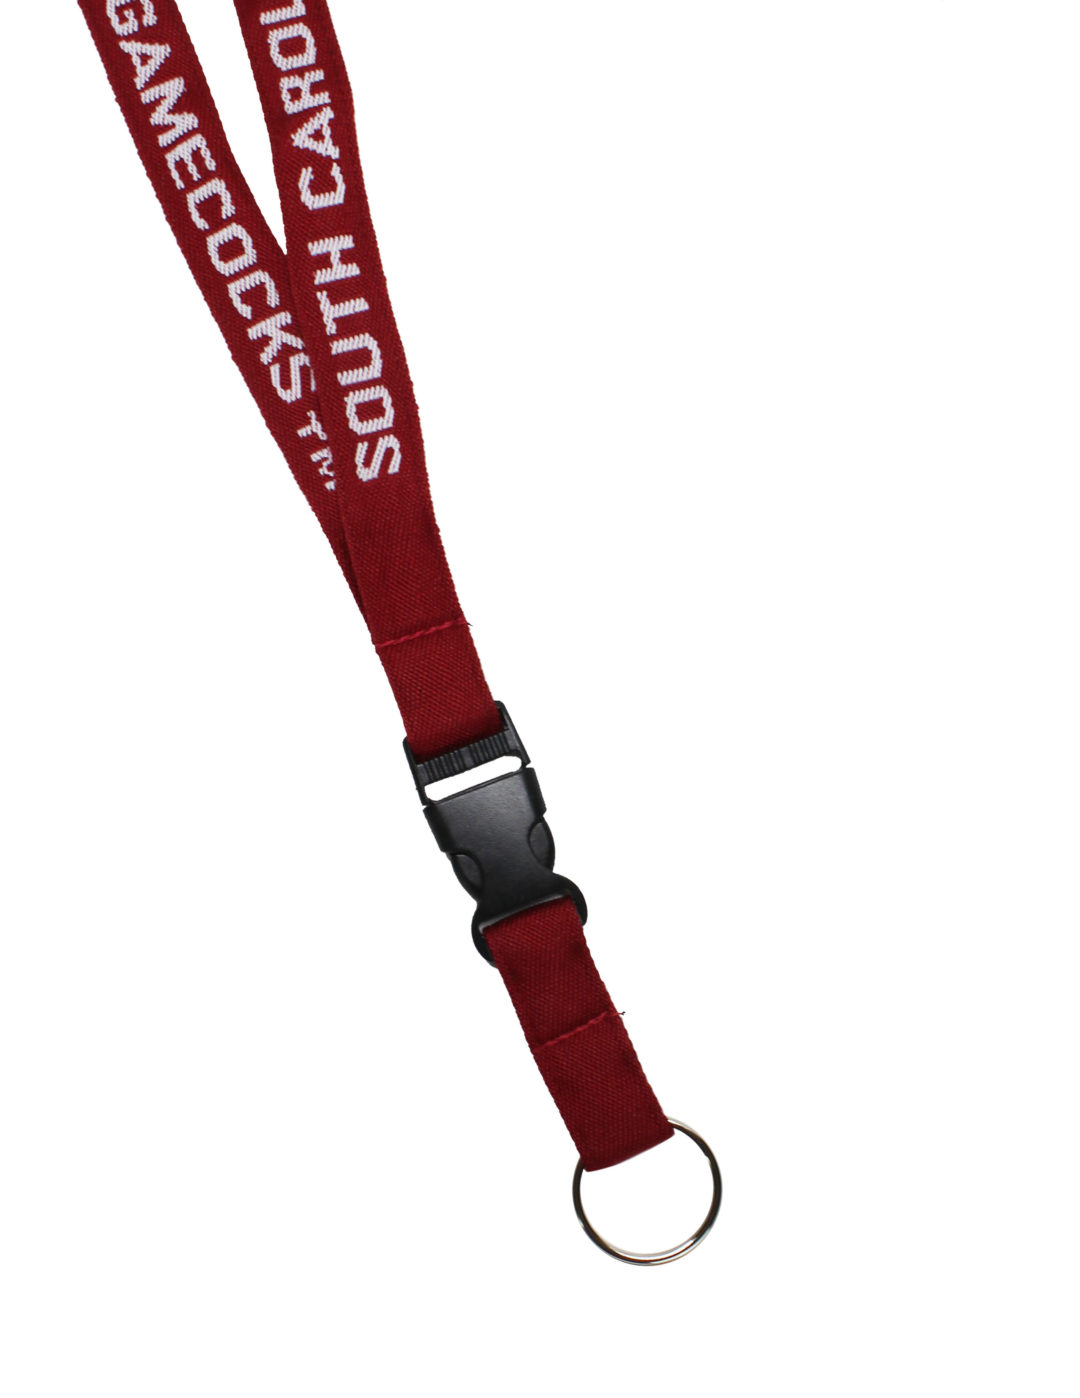 USC South Carolina woven lanyard Barefoot Campus Outfitter